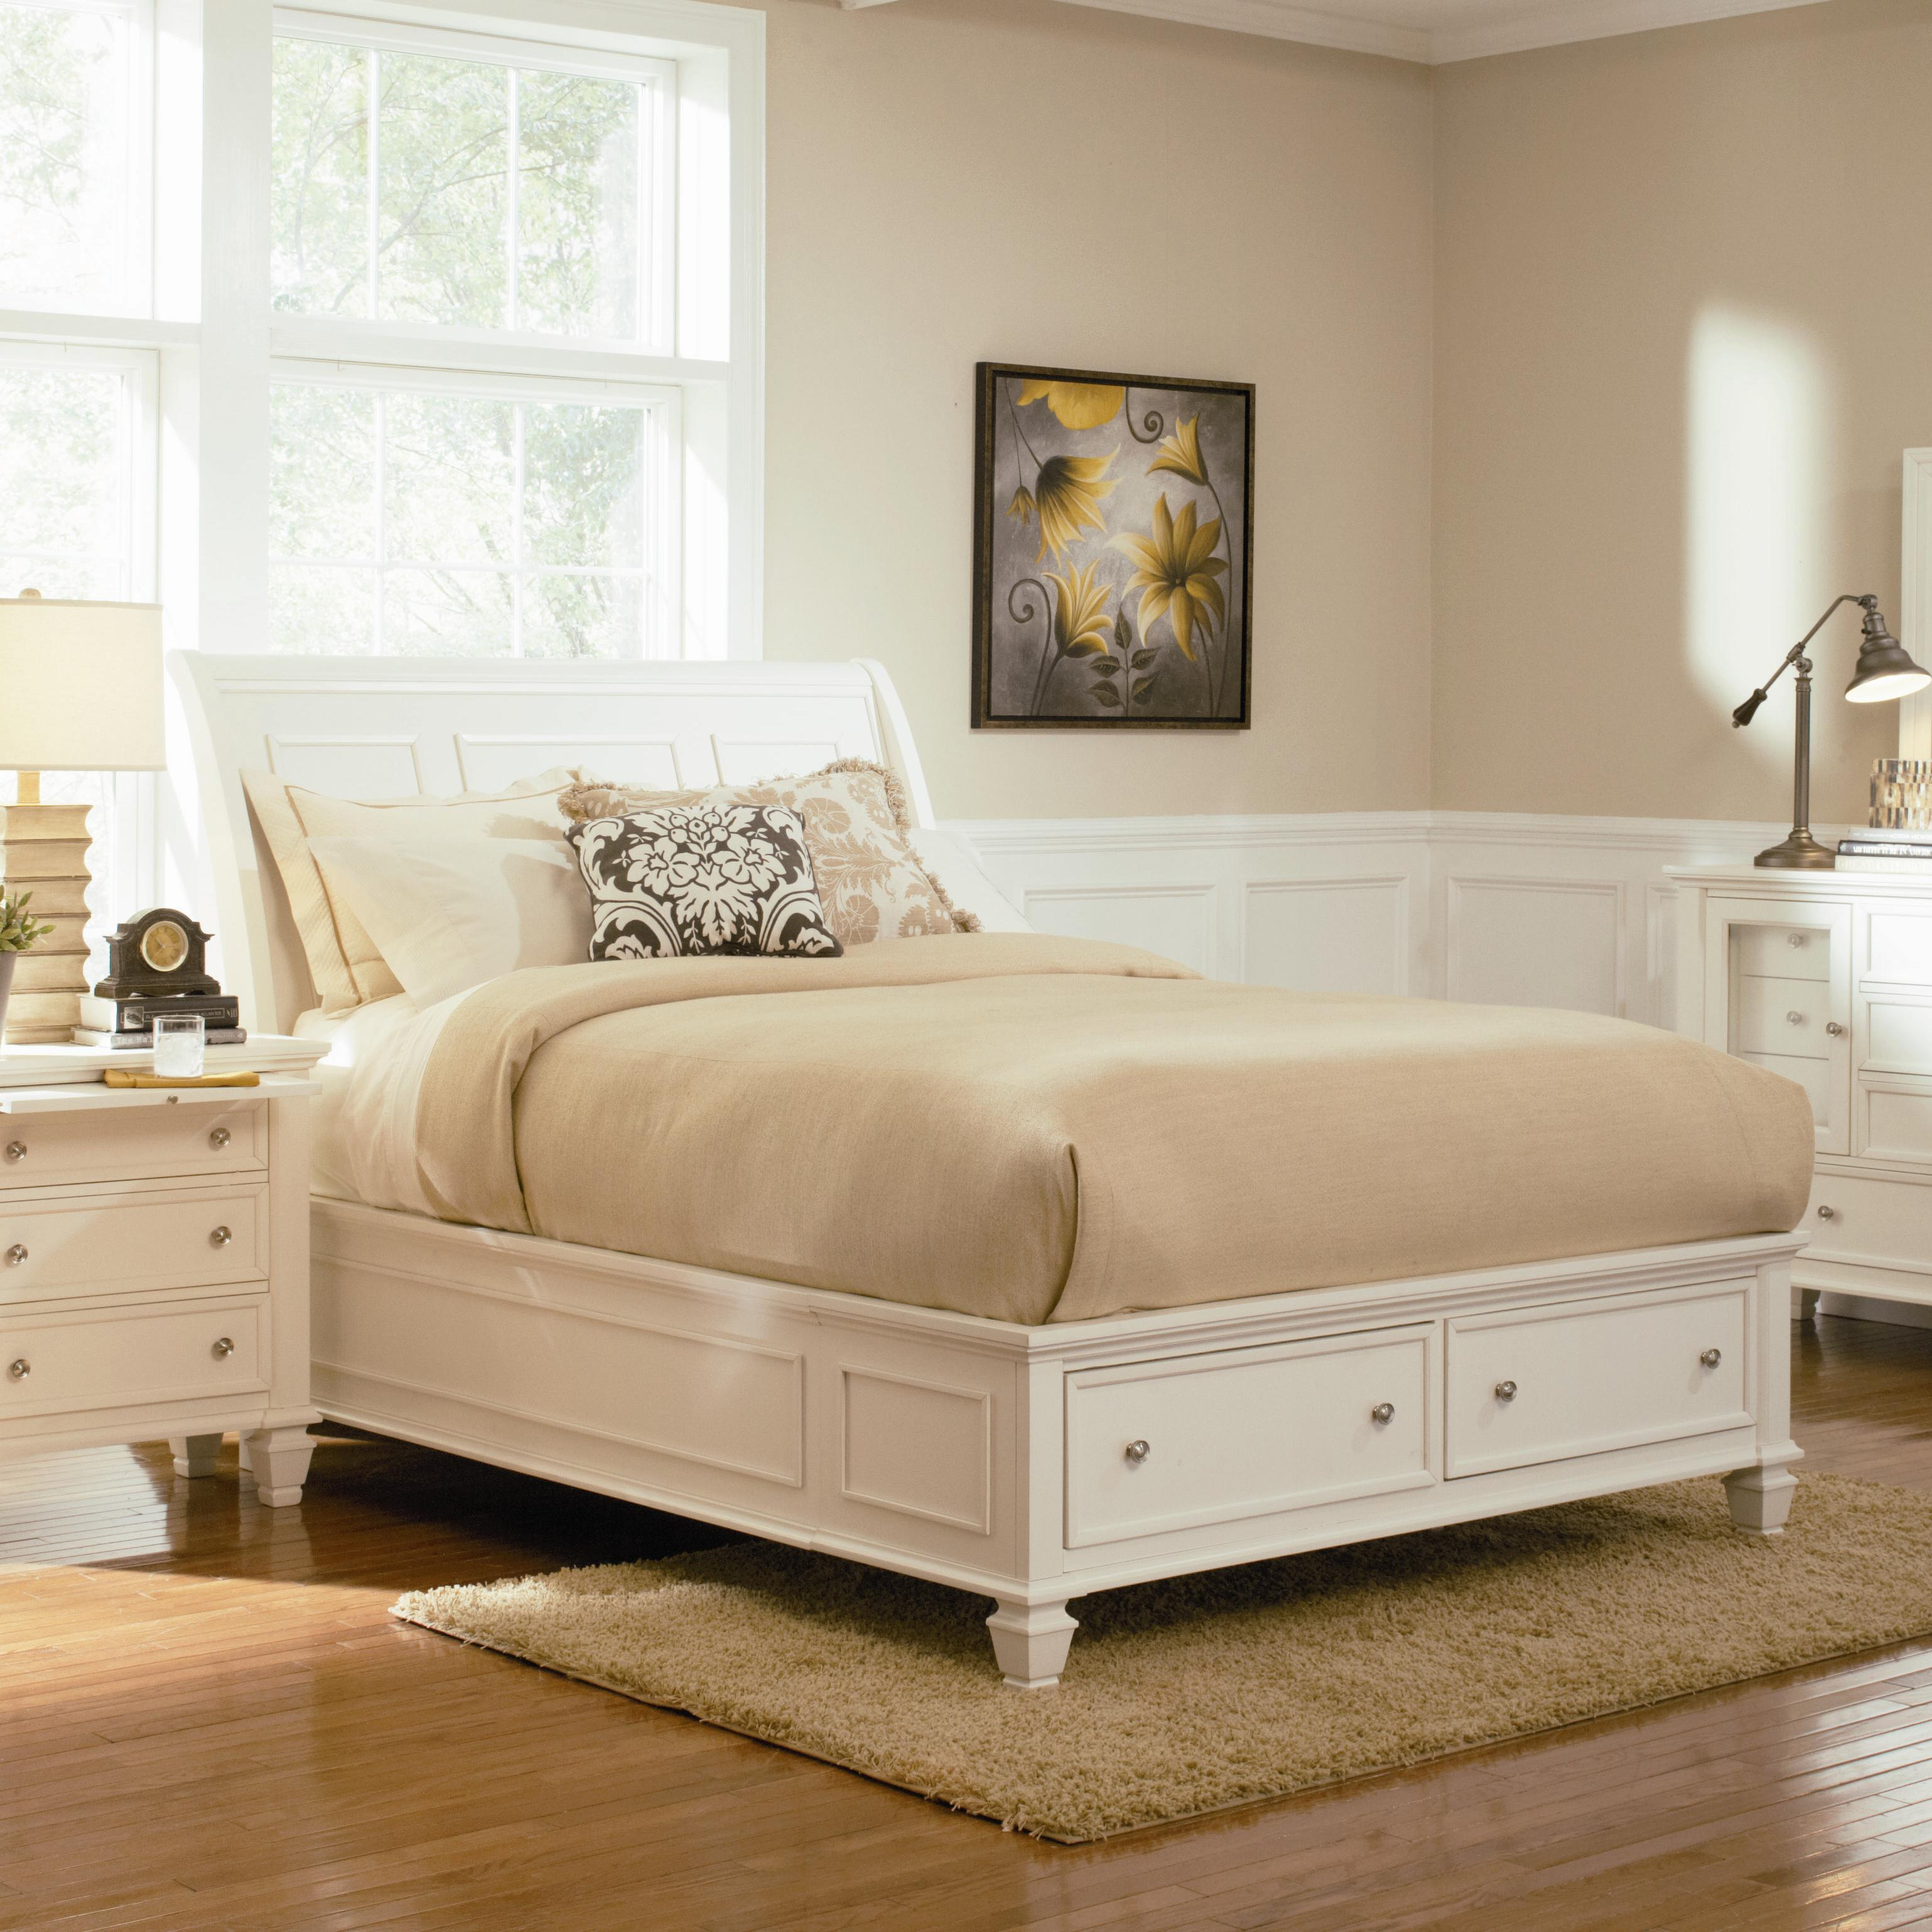 Coaster Sandy Beach King Sleigh Bed - Item Number: 201309KE